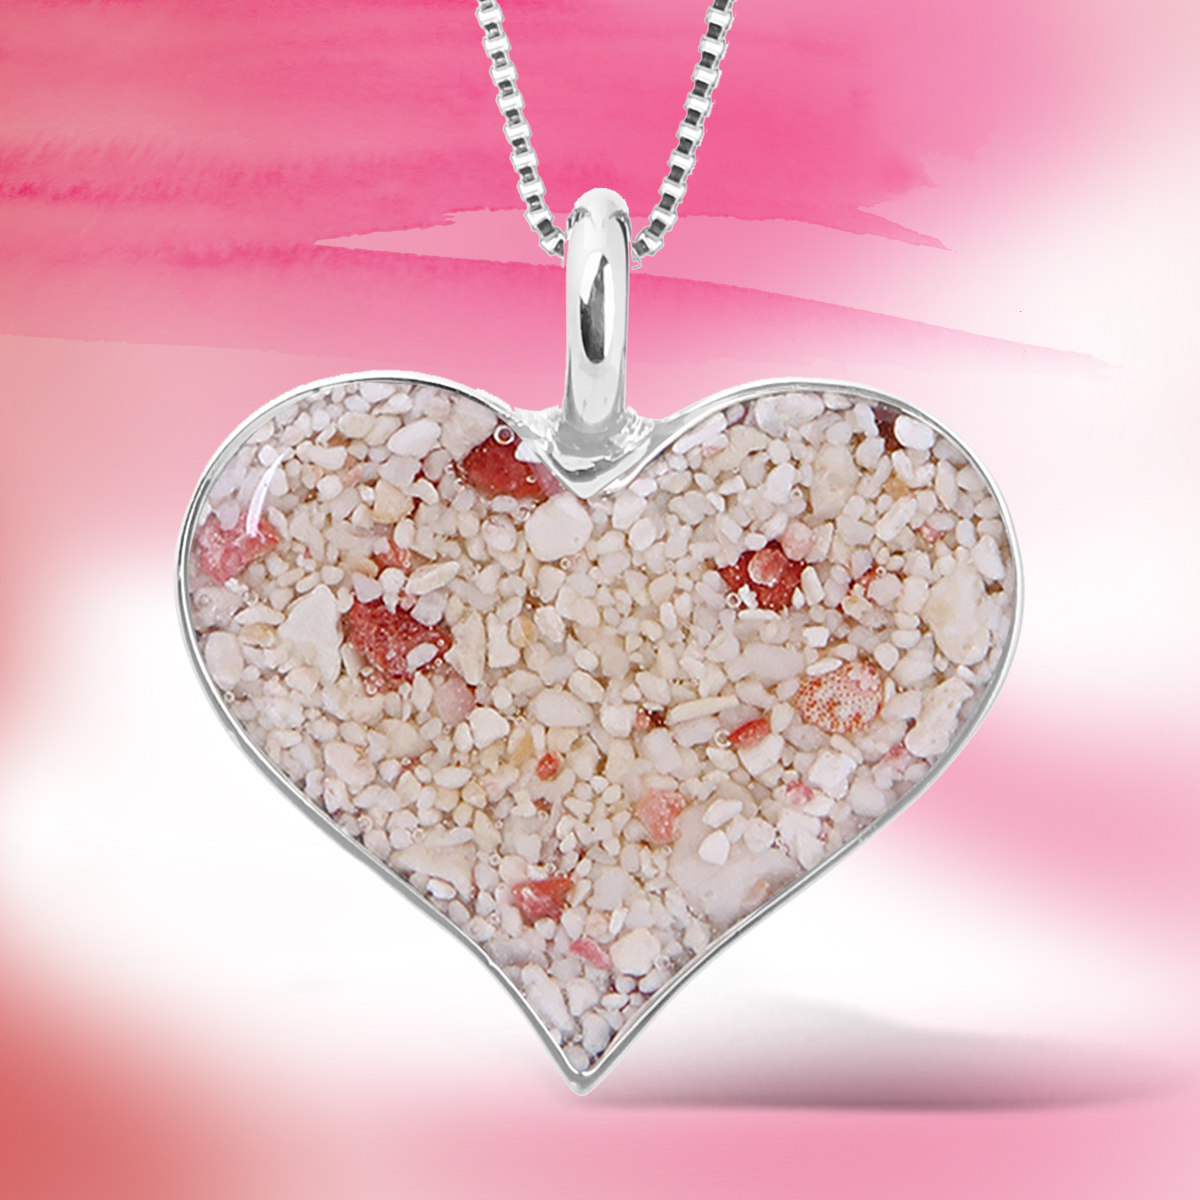 jewelry with meaning - valentines day gifts heart of sand necklace